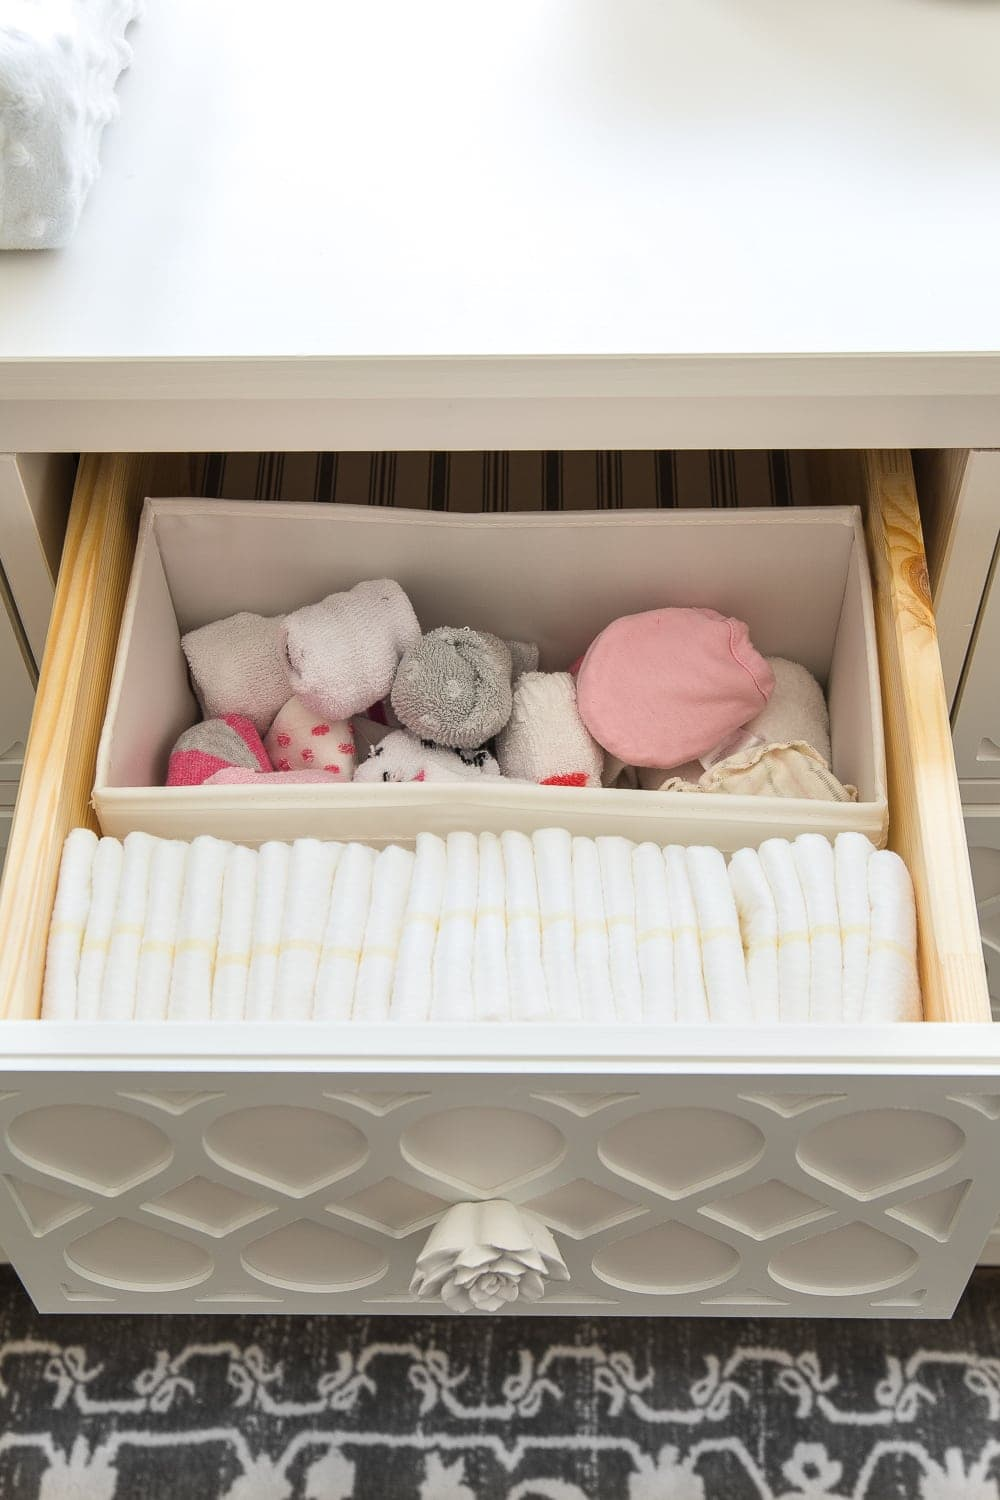 Nursery Organization | Dresser drawers with dividers to store diapers, socks, and mittens